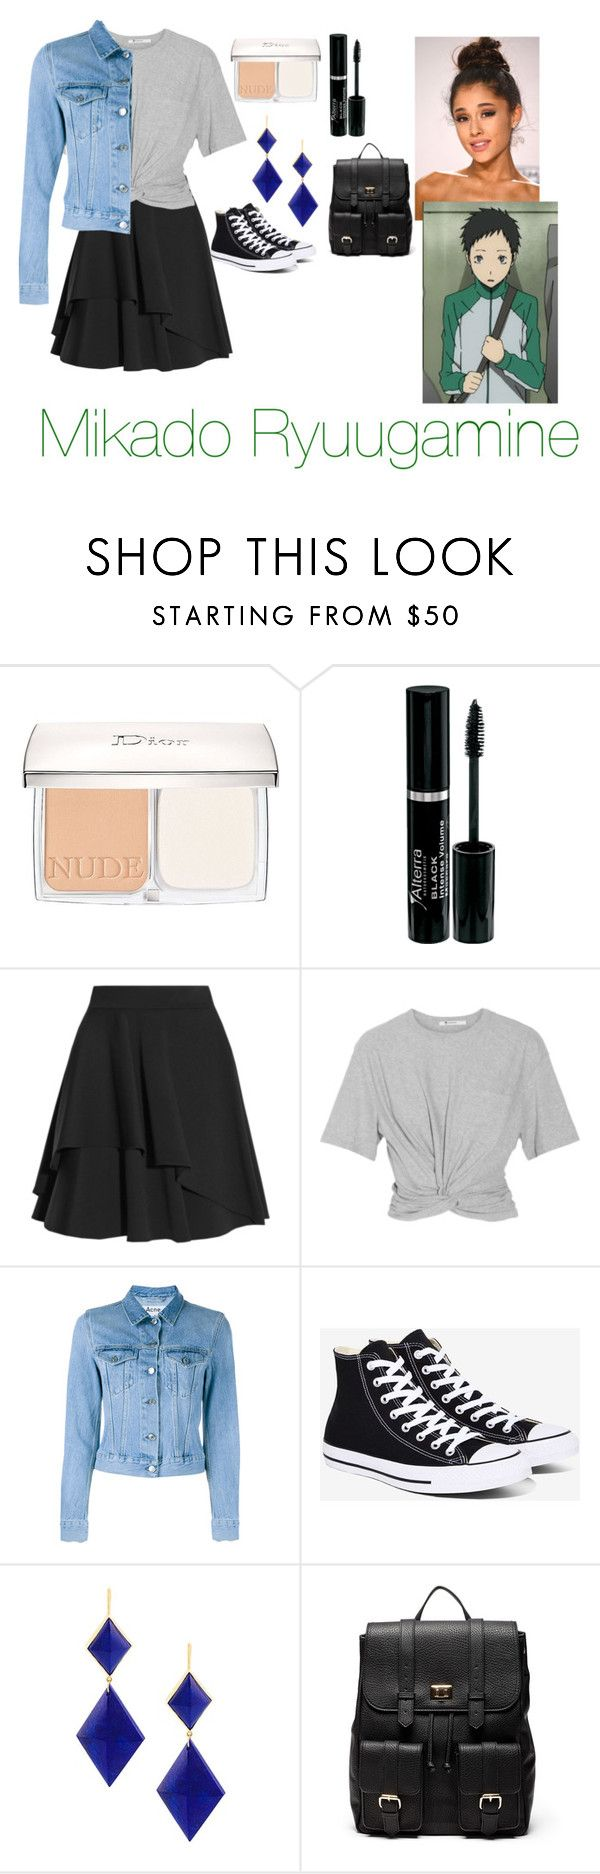 """""""Mikado Ryuugamine"""" by charbear231 ❤ liked on Polyvore featuring Christian Dior, Alexander McQueen, T By Alexander Wang, Acne Studios, Converse, Marie Hélène de Taillac, Sole Society and Forum"""